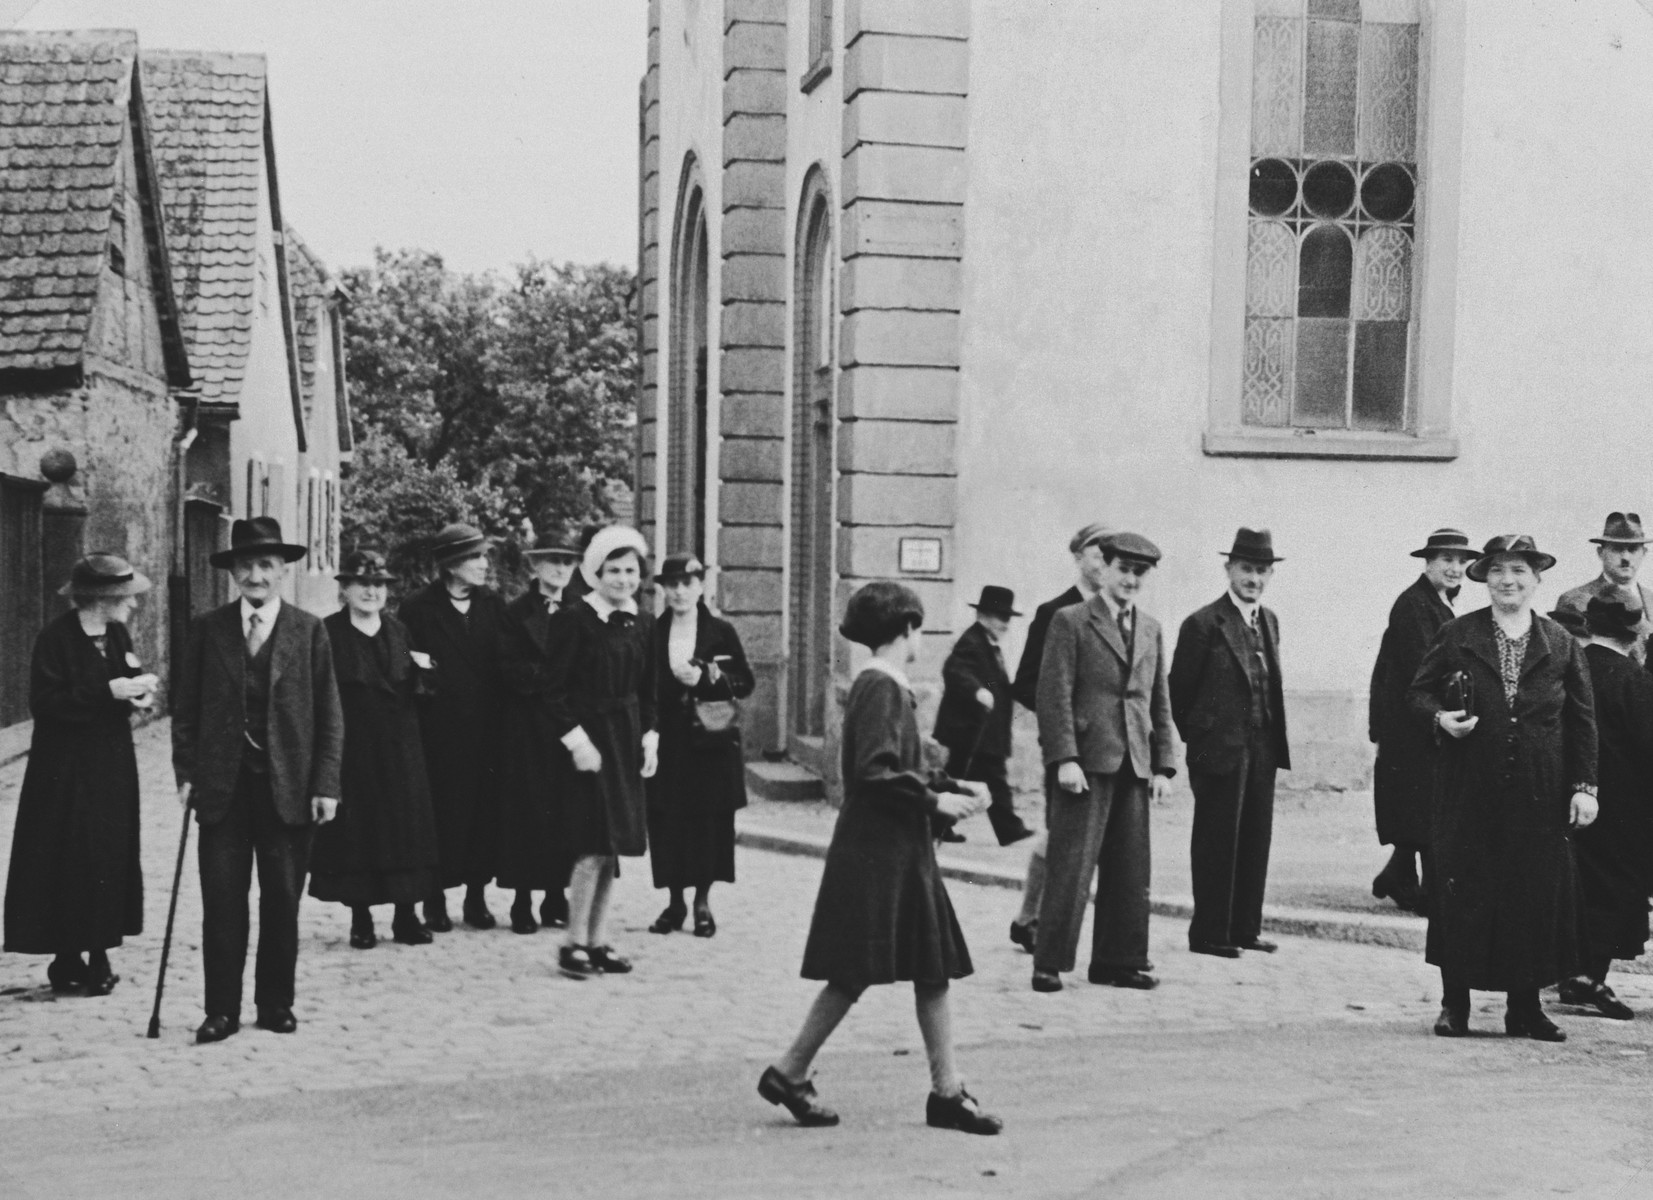 German Jews congregate on the street outside the synagogue in Breisach following Saturday morning services.  Fanny Bähr is in the center of the photograph (with a white feather in her hat, to the right of the woman with the white hat).   This is part of series of photographs taken of the Breisach Jewish community 1937.  In October 1940 the entire community was deported to the Gurs internment camp in southern France.